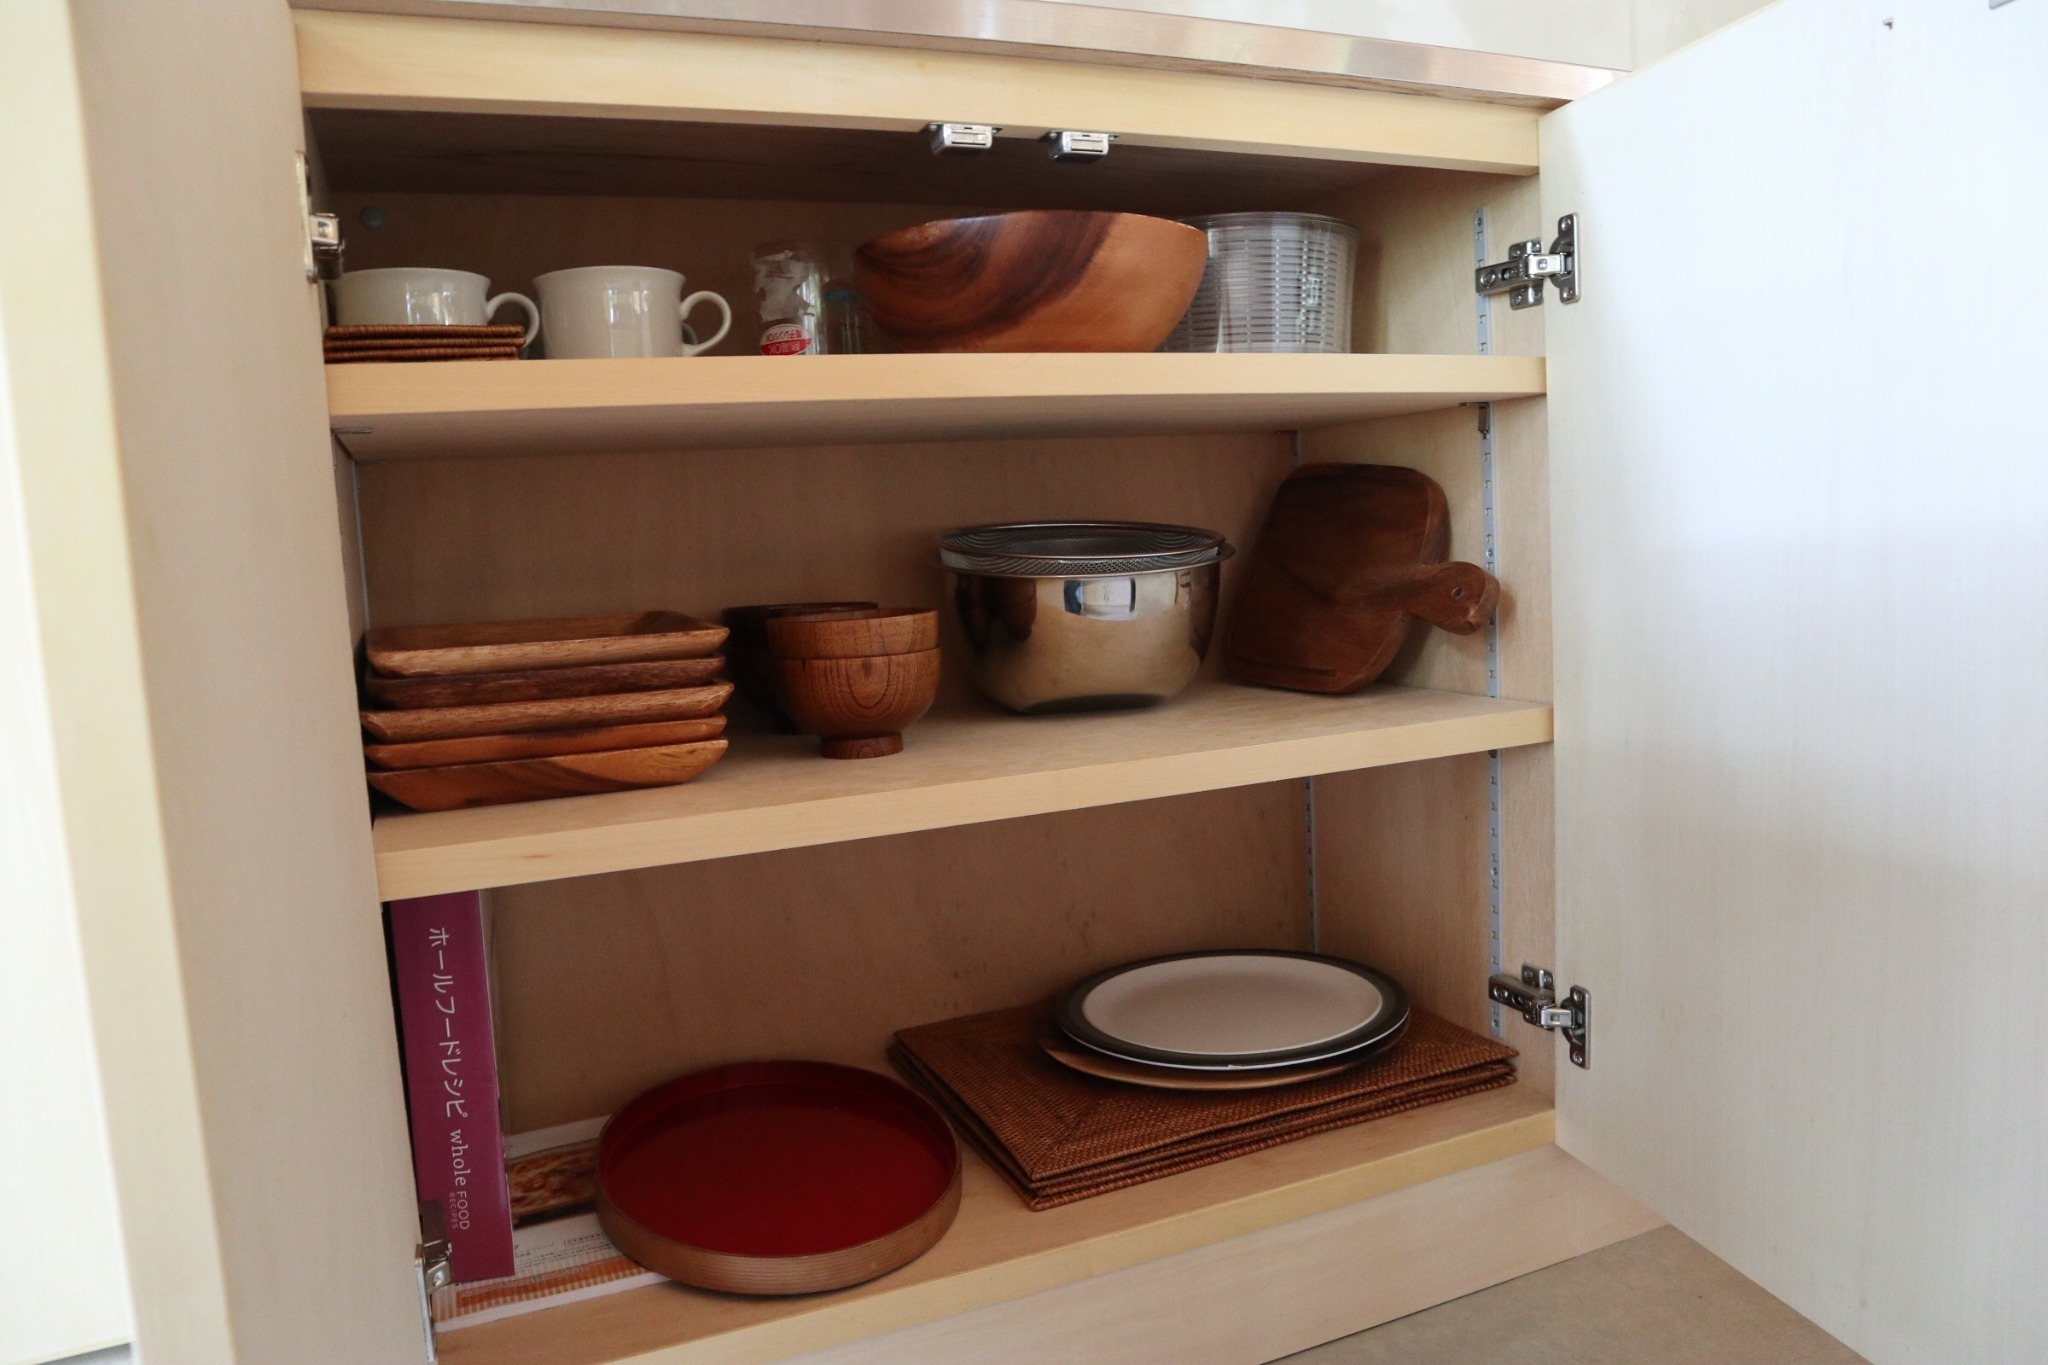 Equipment such as tableware